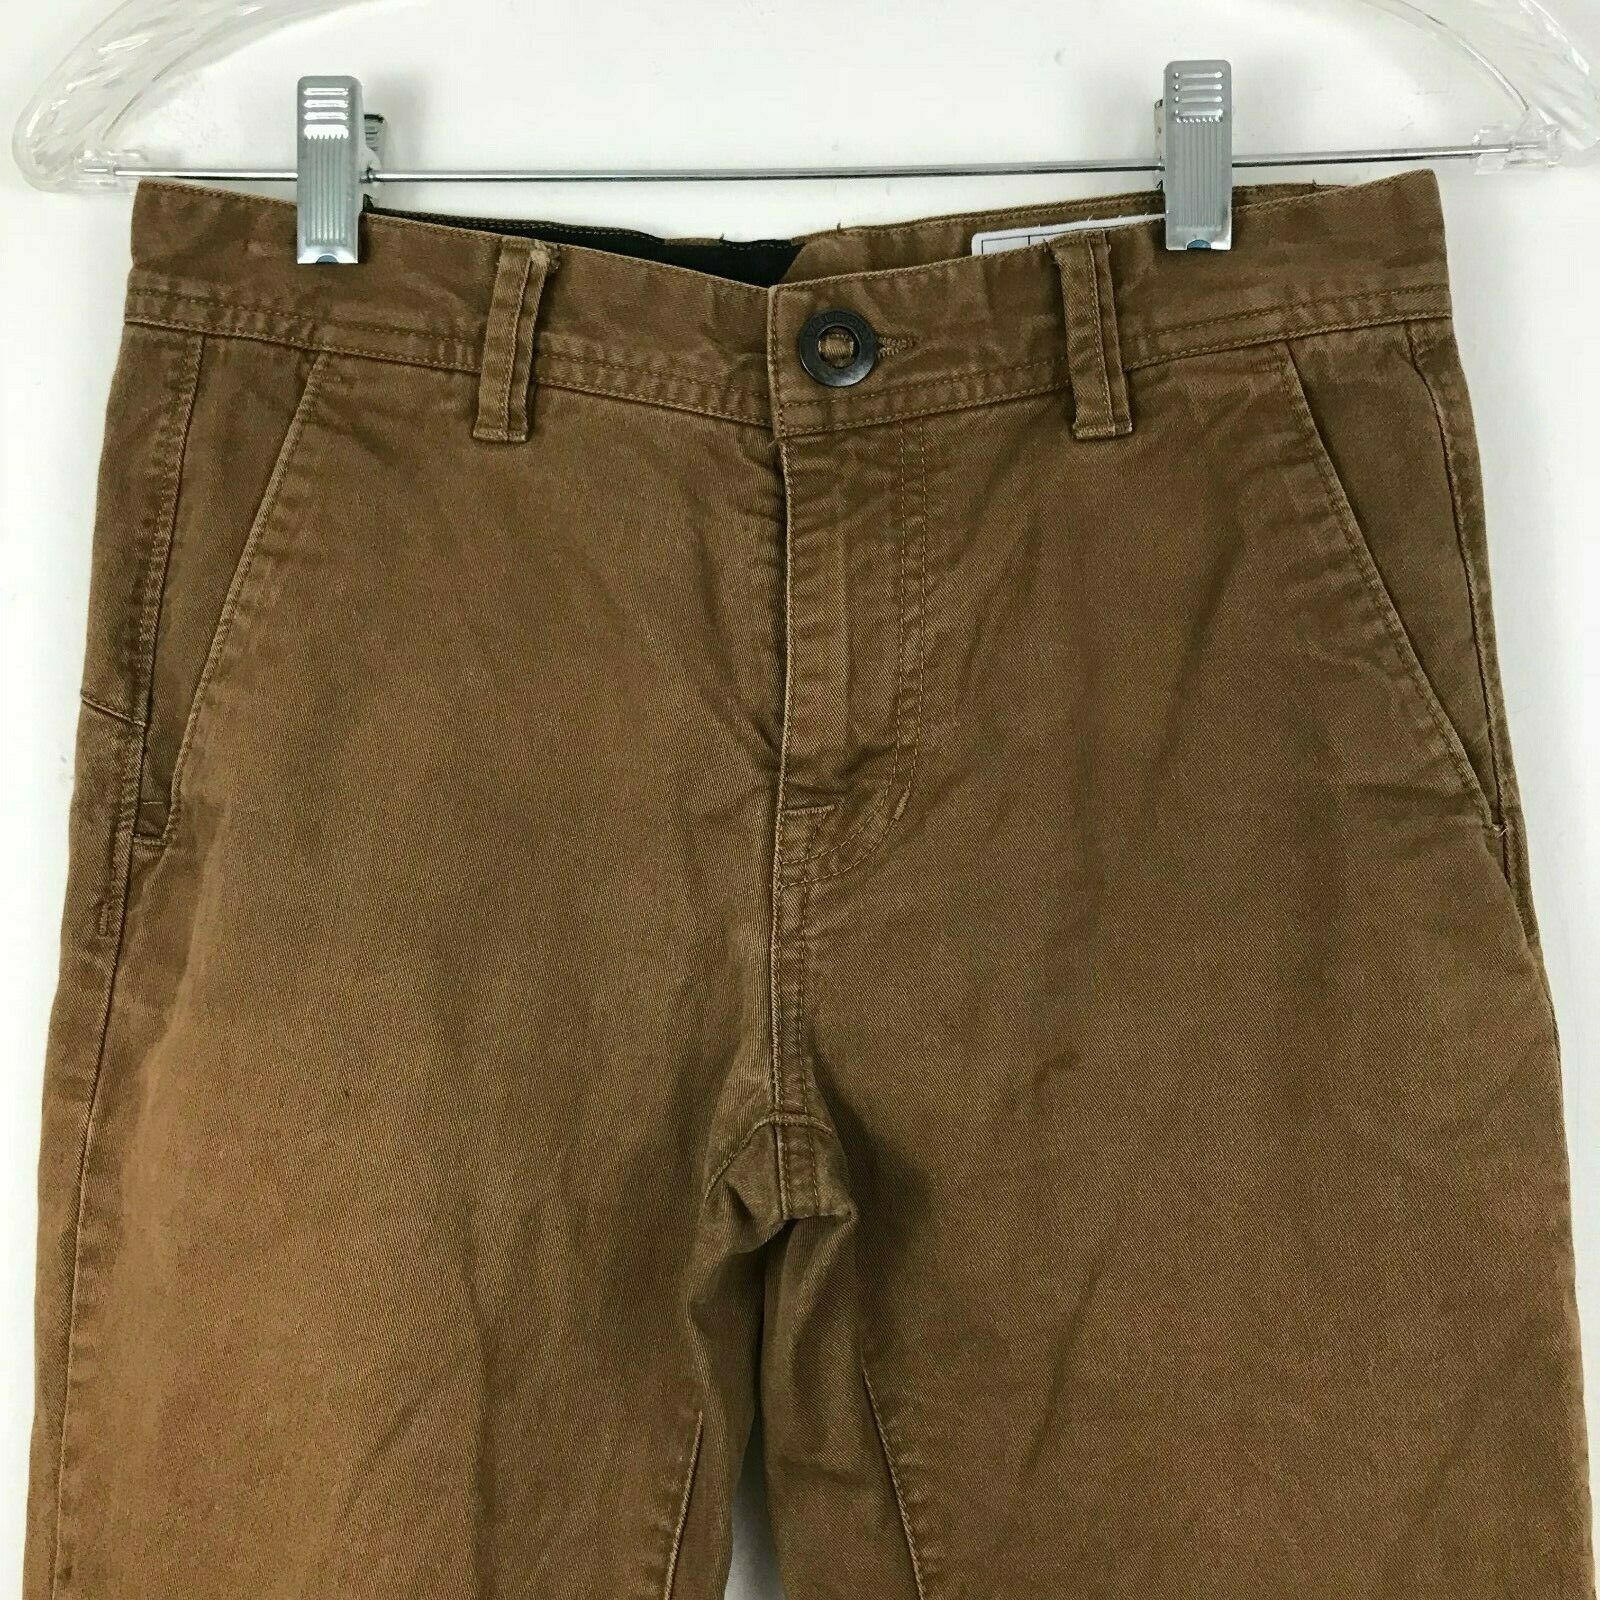 Volcom boys slim fit chino size 26 distressed